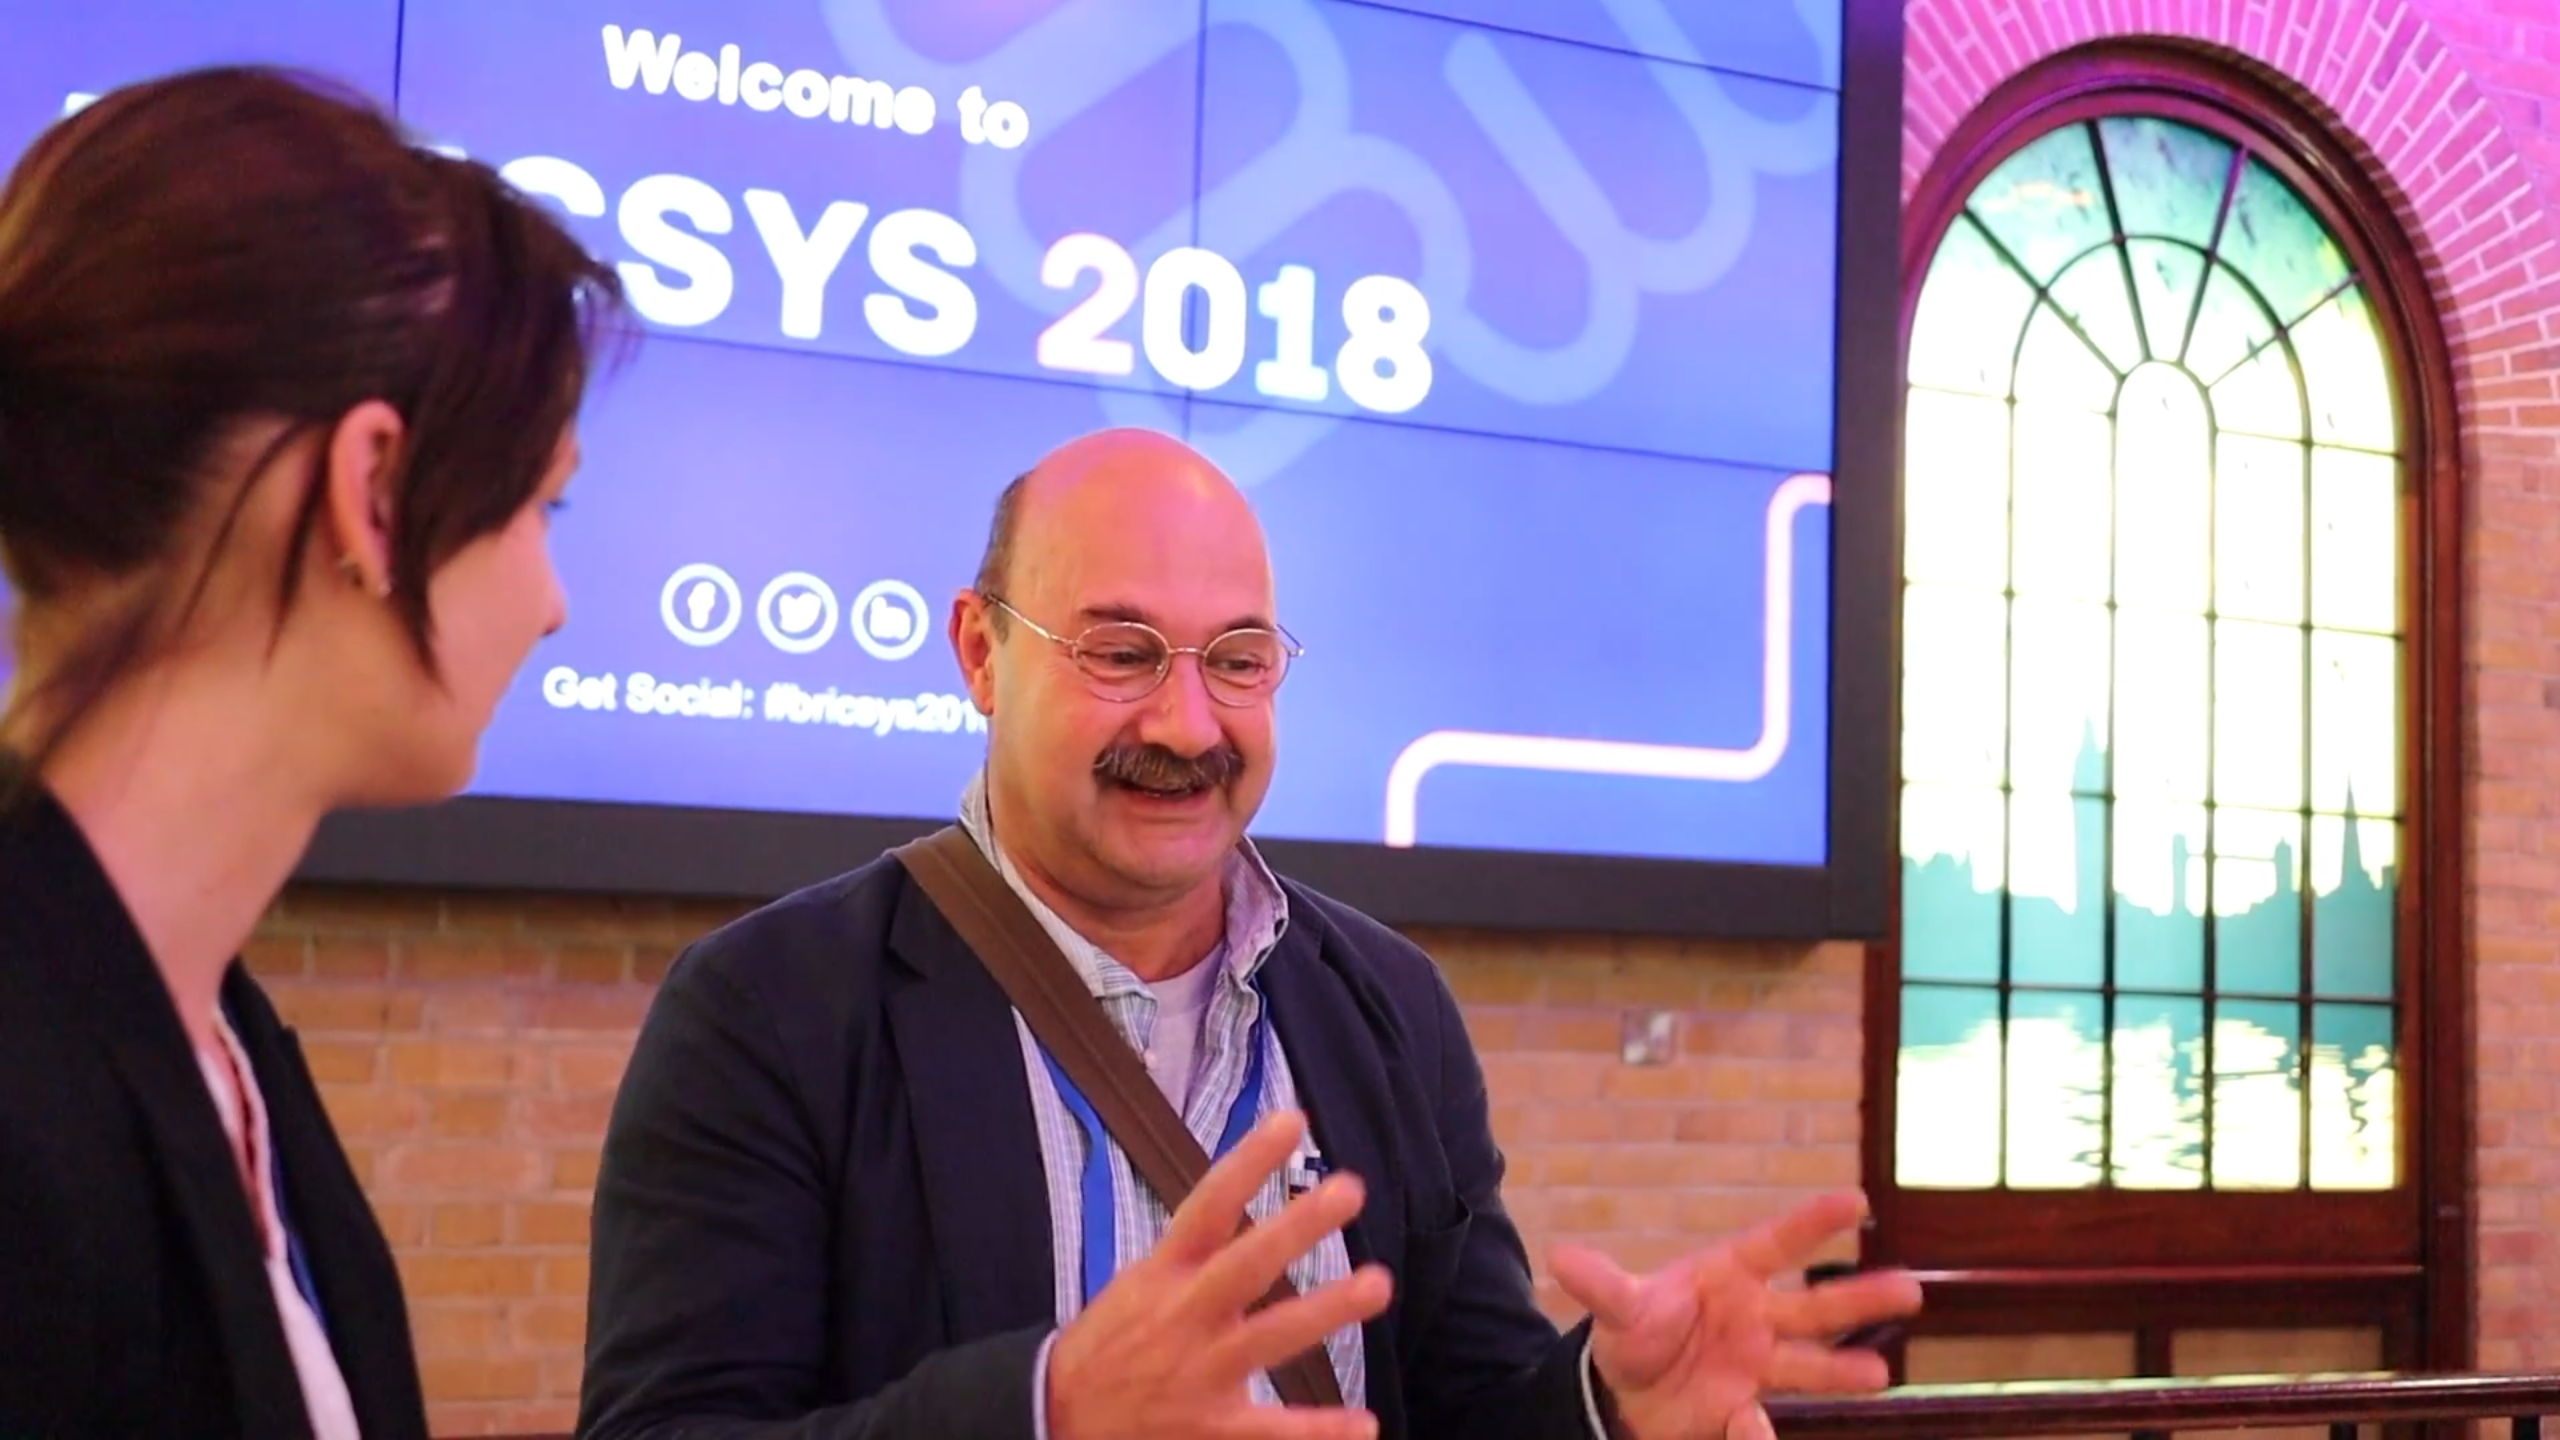 This was Bricsys 2018